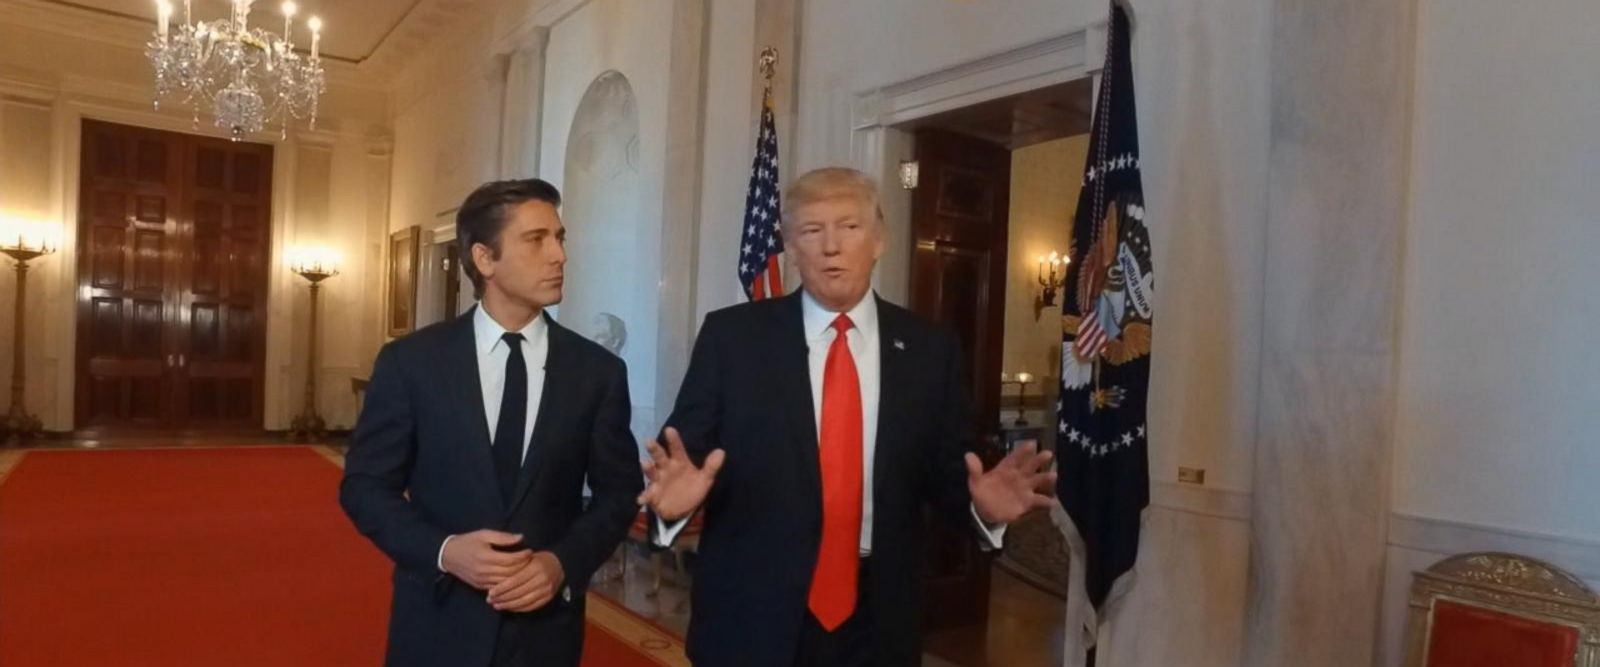 VIDEO: President Trump: The White House Interview (Part 1)